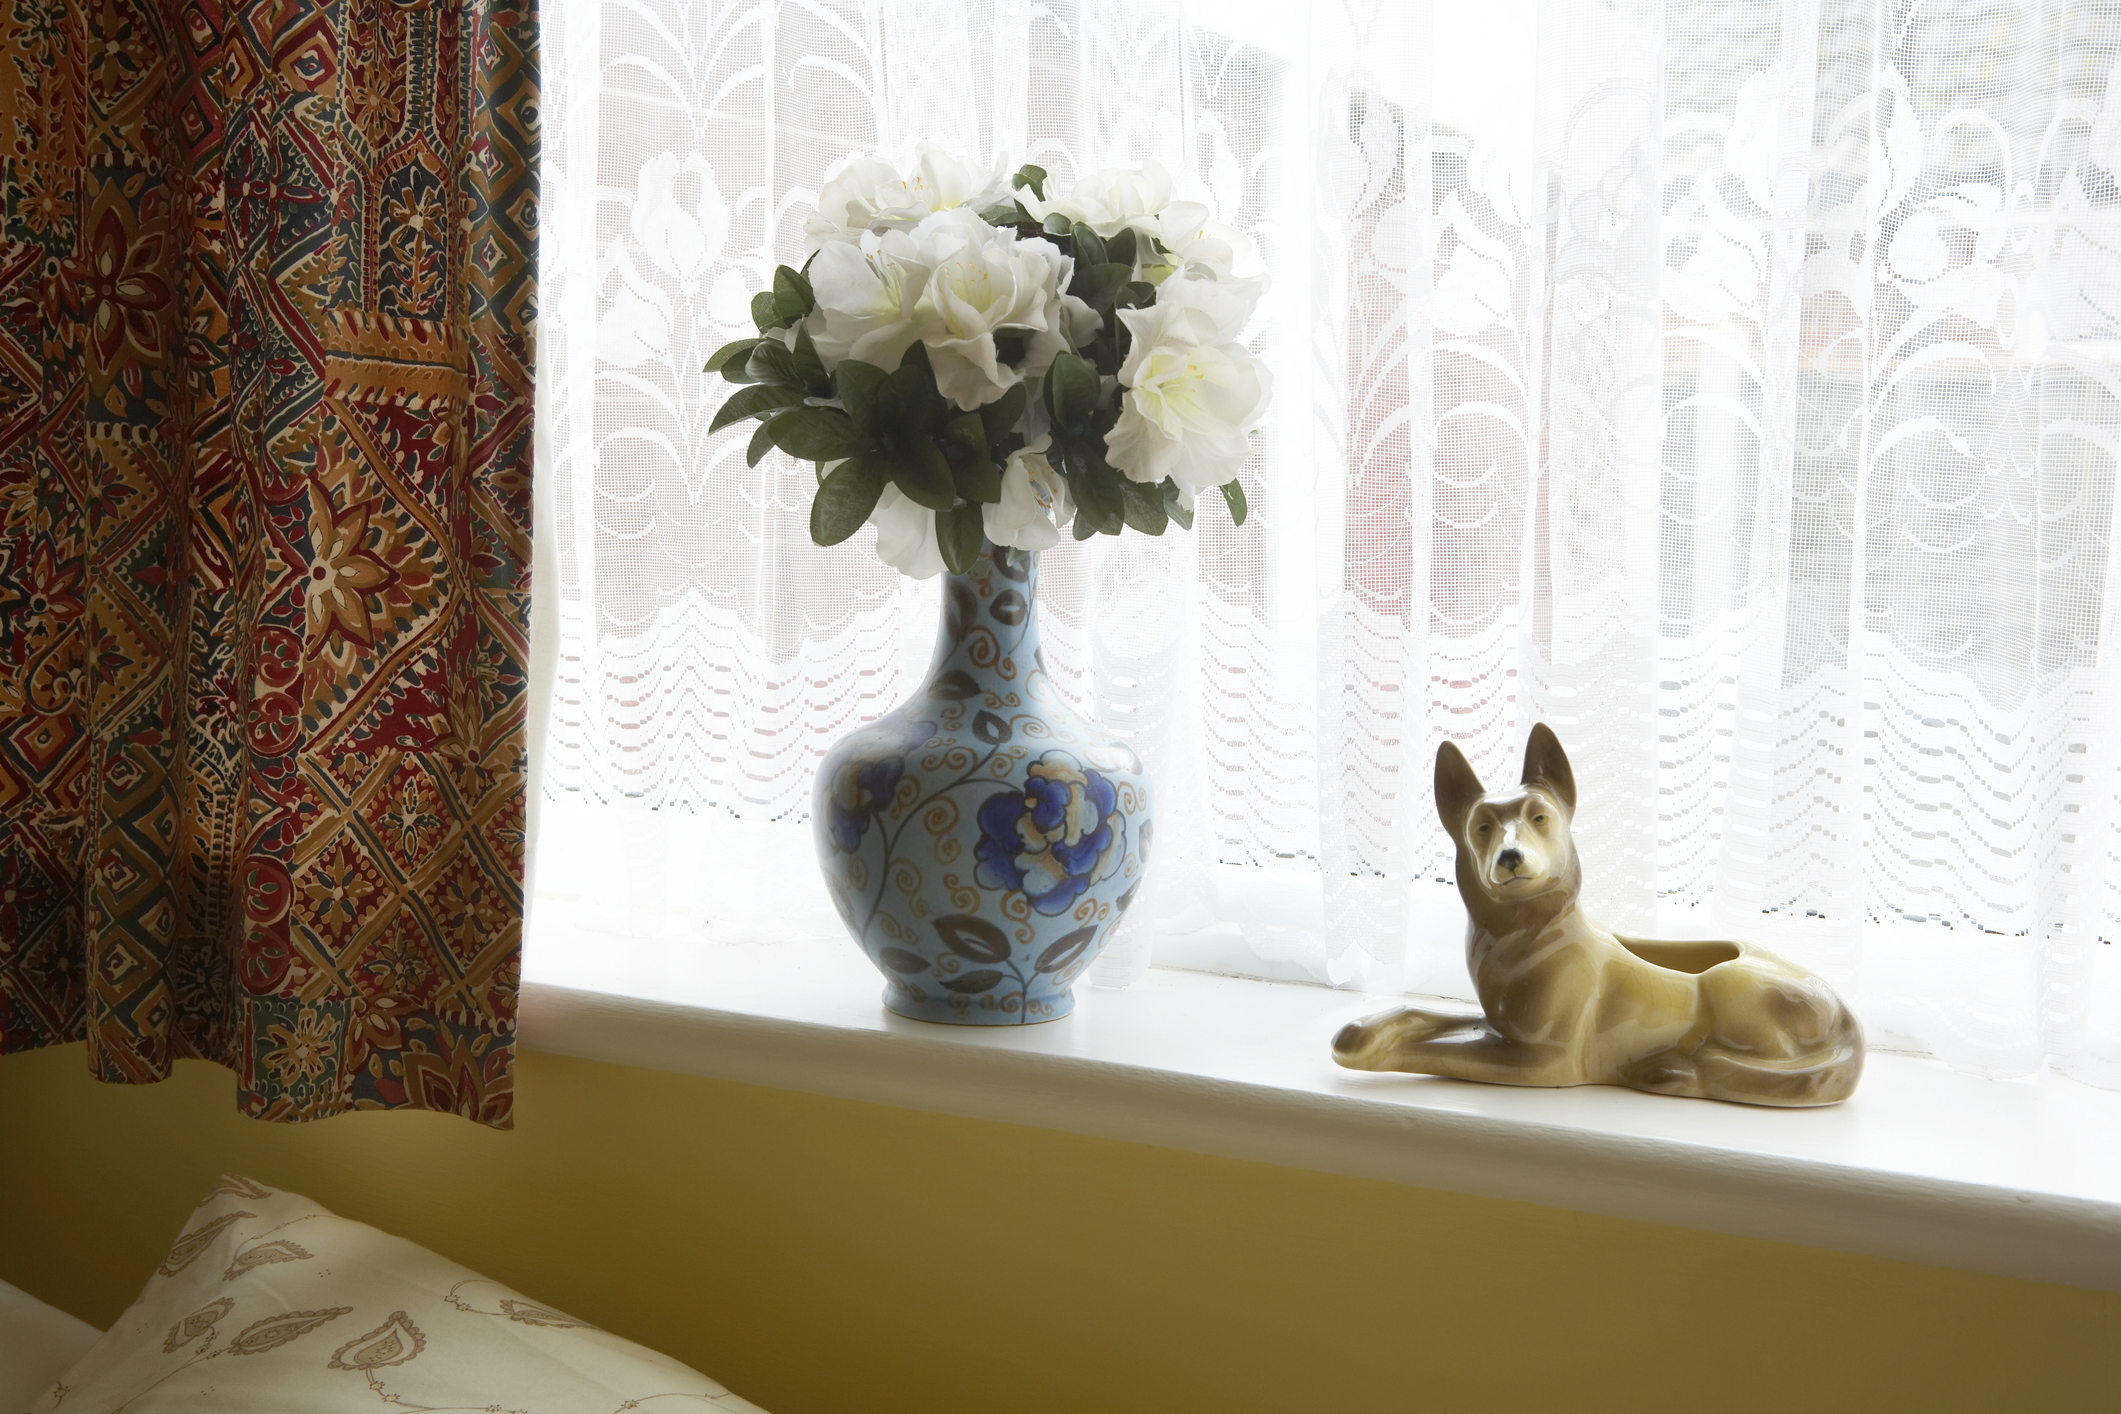 Porcelane dog and vase of flowers on window sill